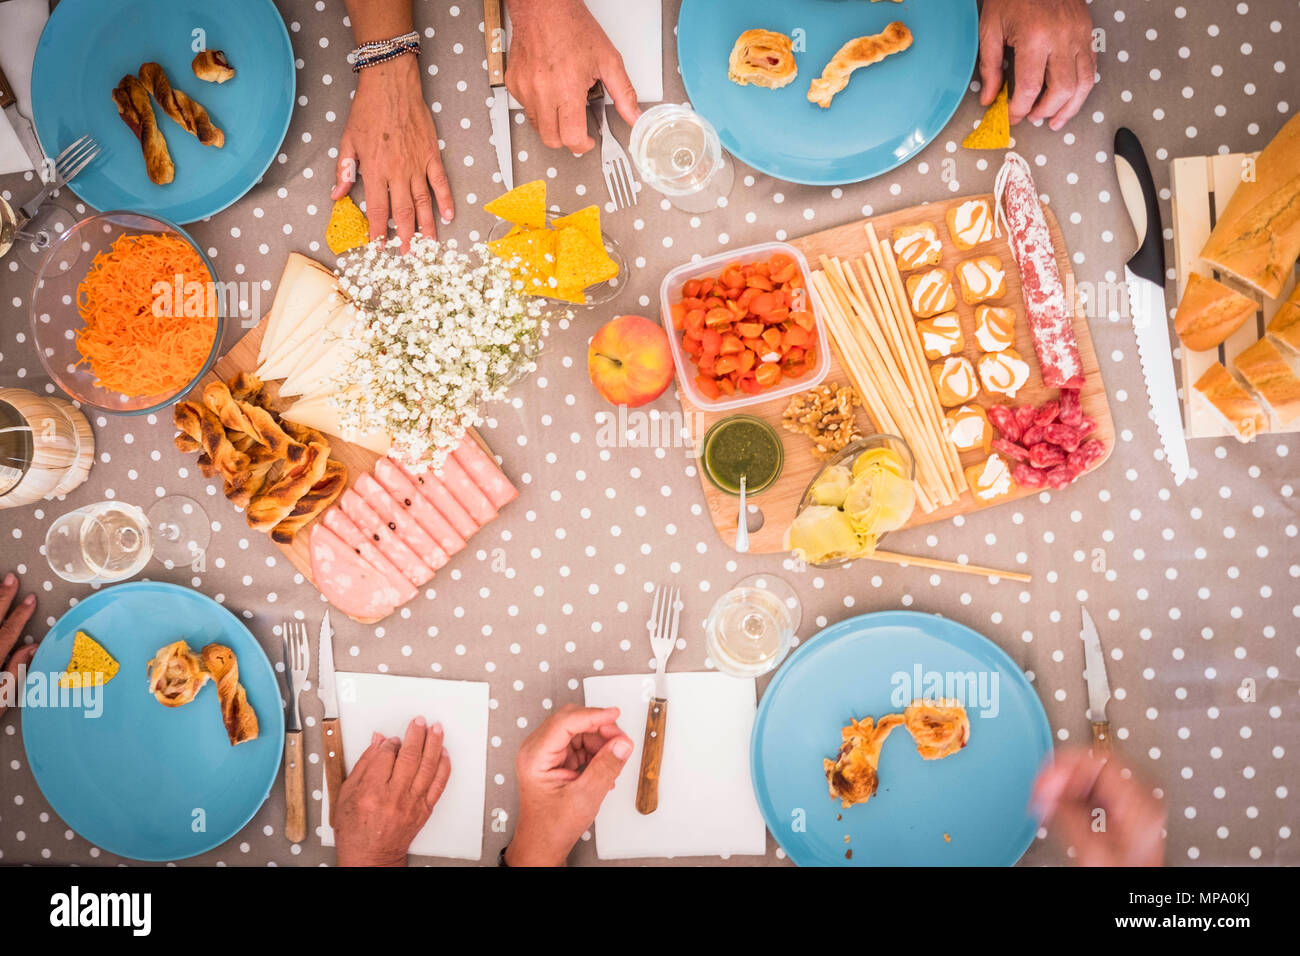 highview of a table during a lunch for 4 senior men and women. bright image with food like mortadella, carrots, slami, bread and more.many hands on th - Stock Image